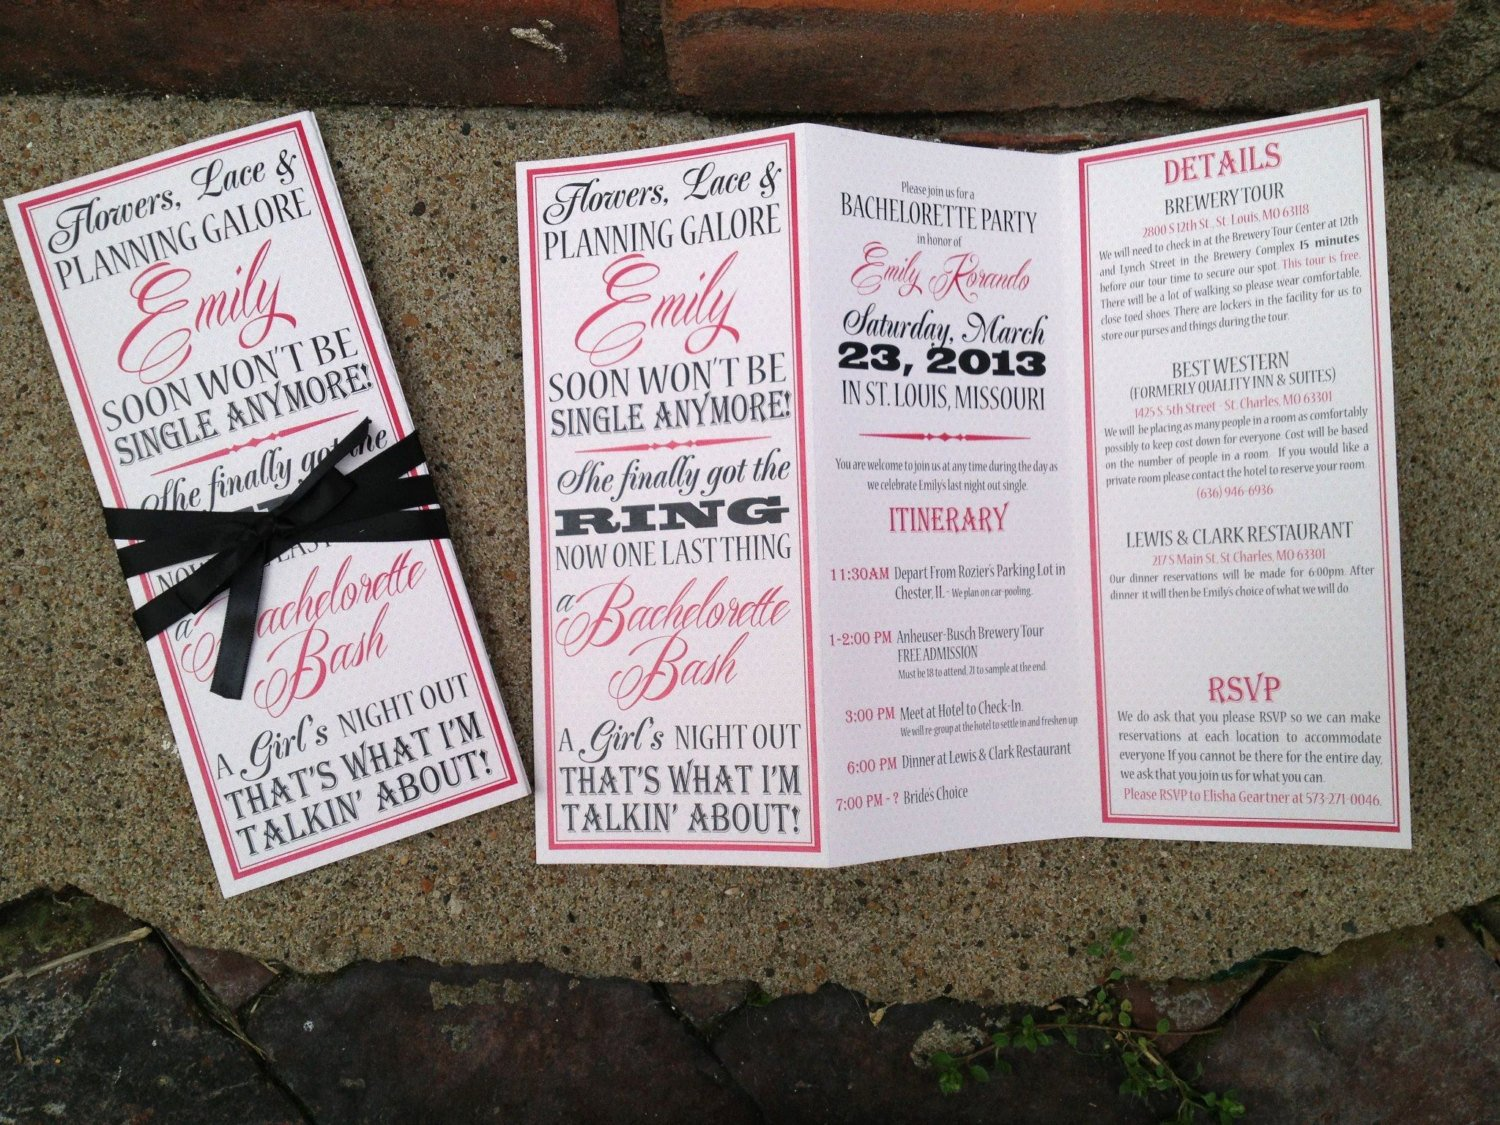 Bachelorette Party Itinerary Template Unique Bachelorette Party Invite Trifolded Itinerary